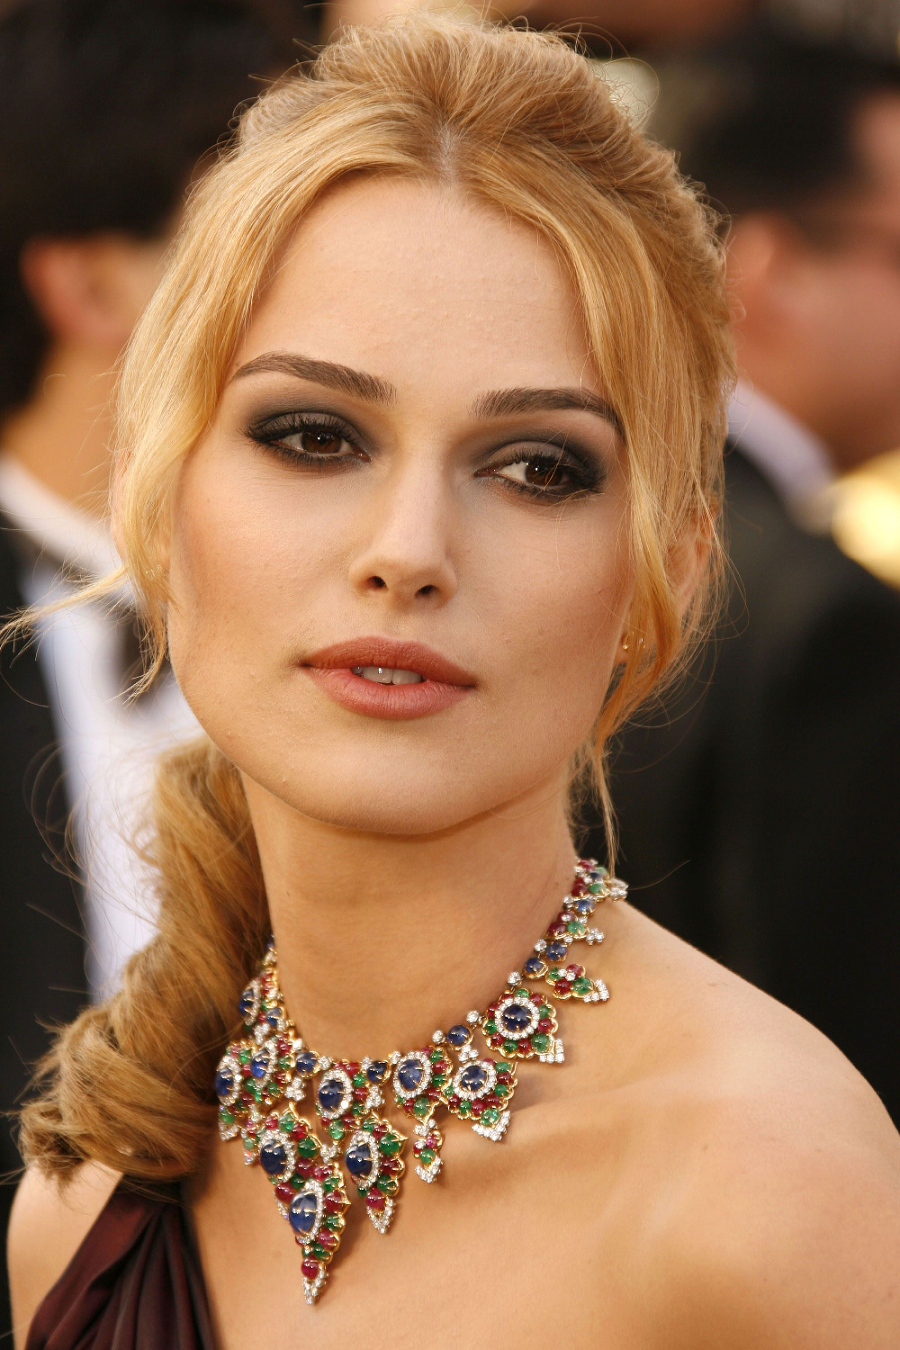 Amazing Hollywood celeb bling Keira Knightley Wearing An Elegant Necklace with Blue Saphire, Emerald and Ruby Stones